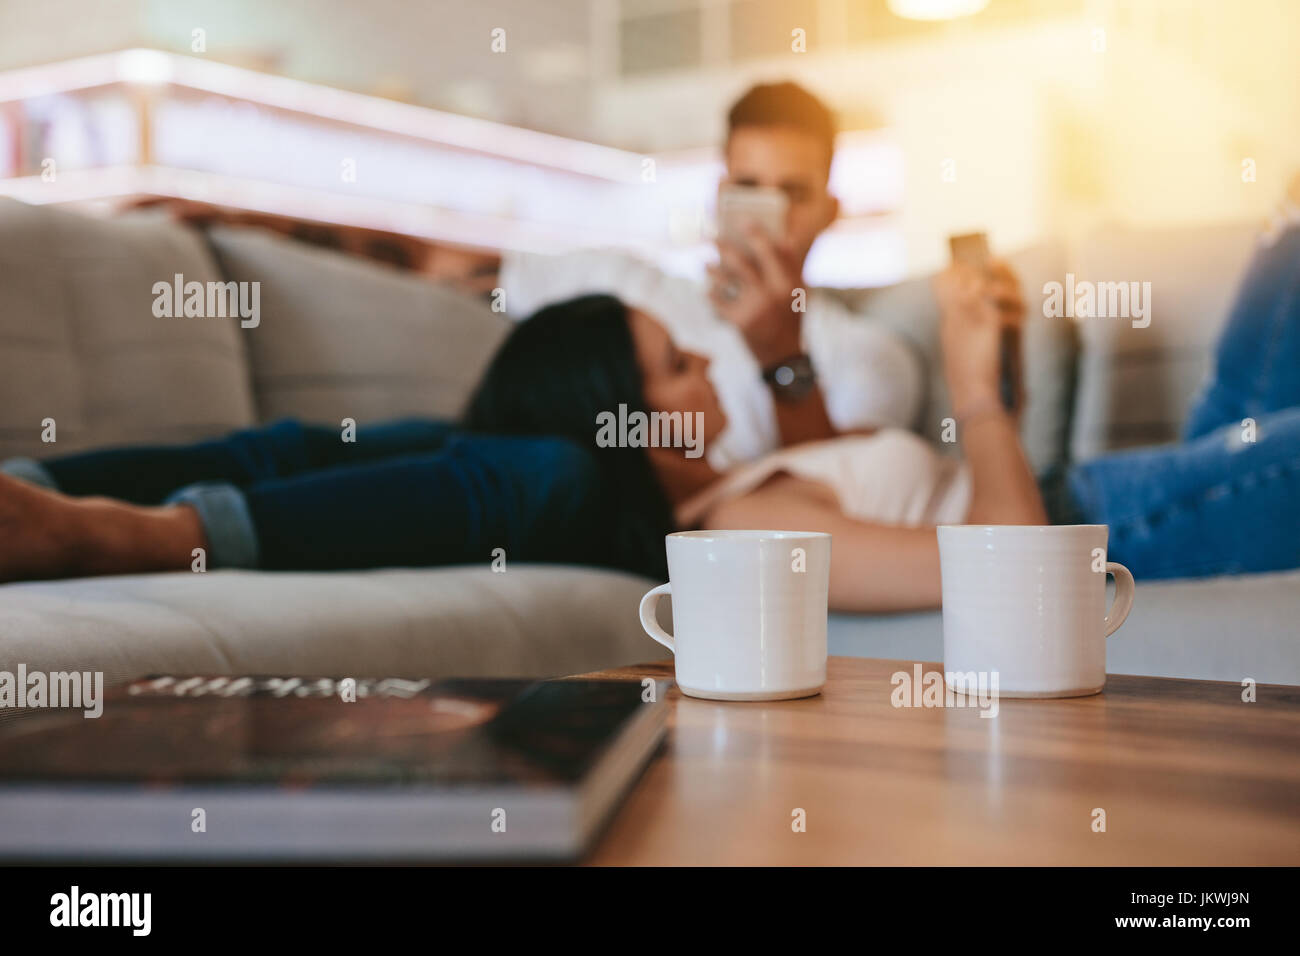 Two coffee cups on table with couple relaxing in background on couch. Cups of coffee in front with man and woman - Stock Image